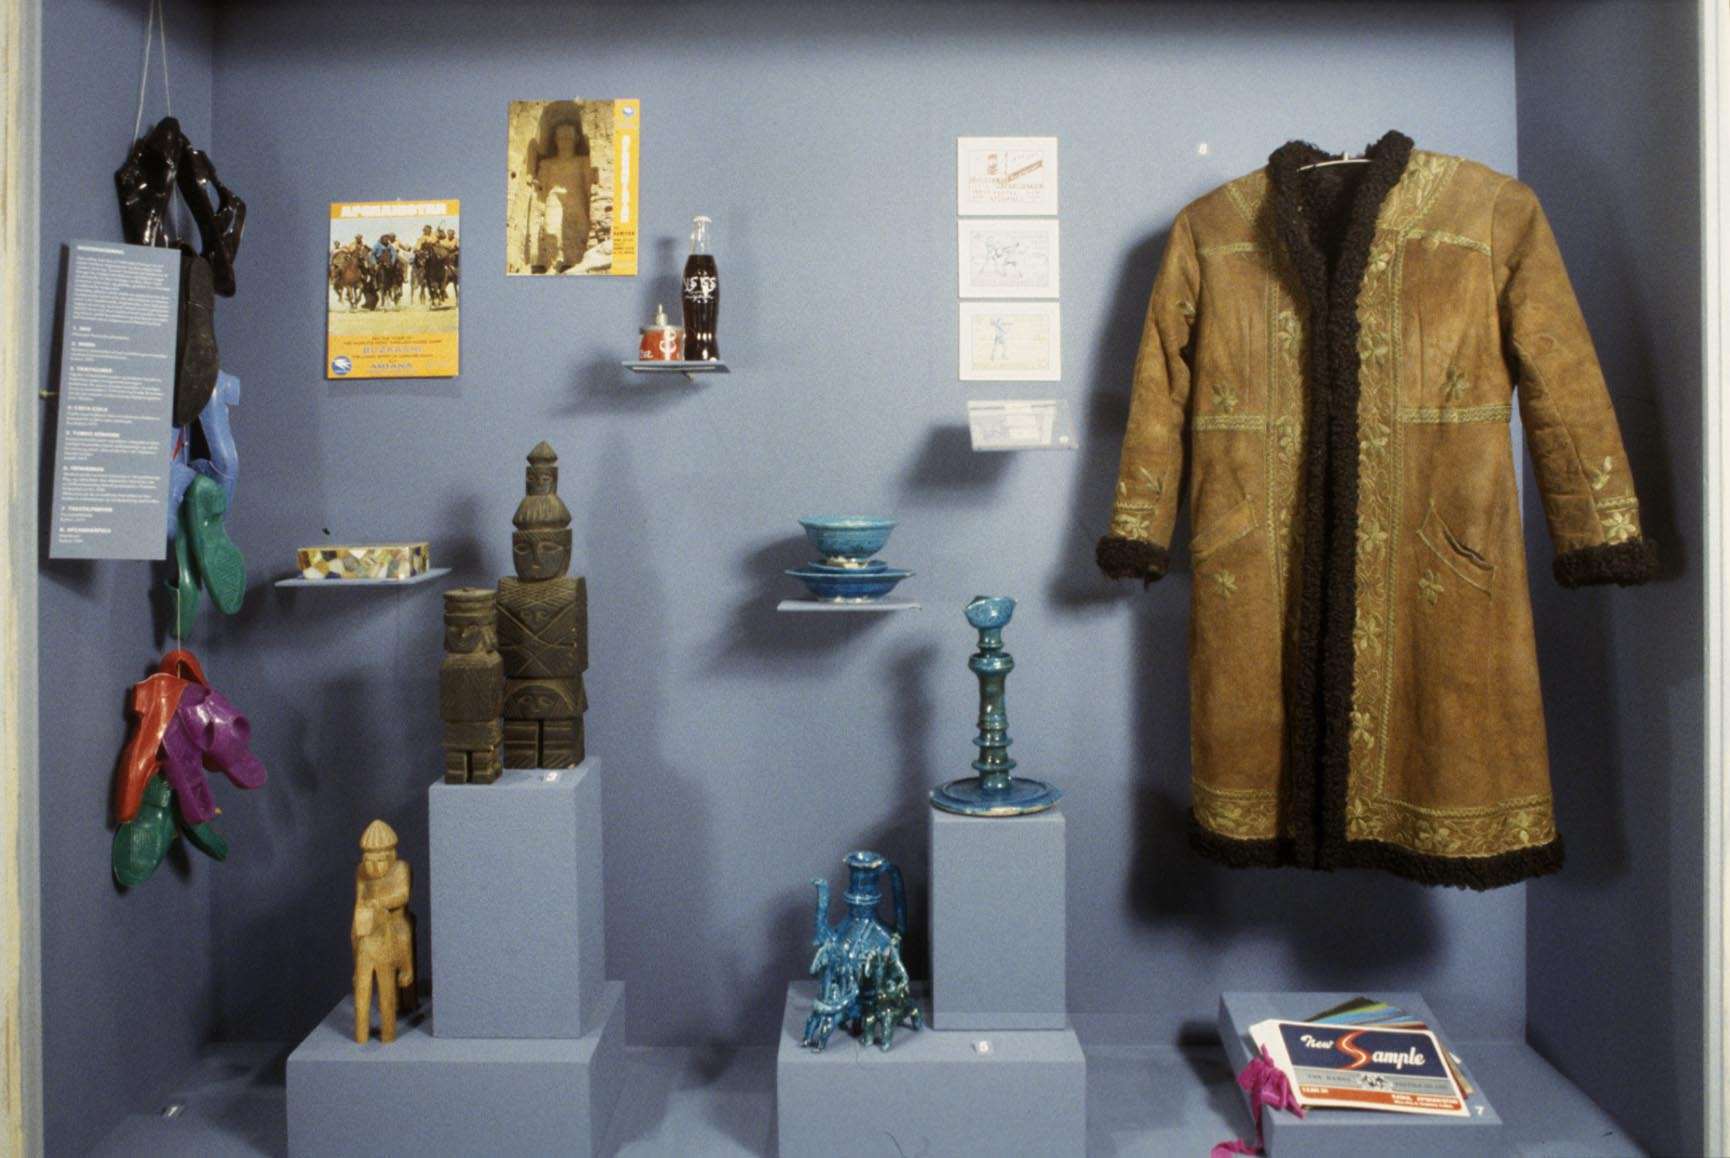 Many of the people visiting the exhibition had themselves worn an Afghan coat back in the 1970s. Back then, many hippies travelled to Afghanistan. Photo: Moesgaard Museum